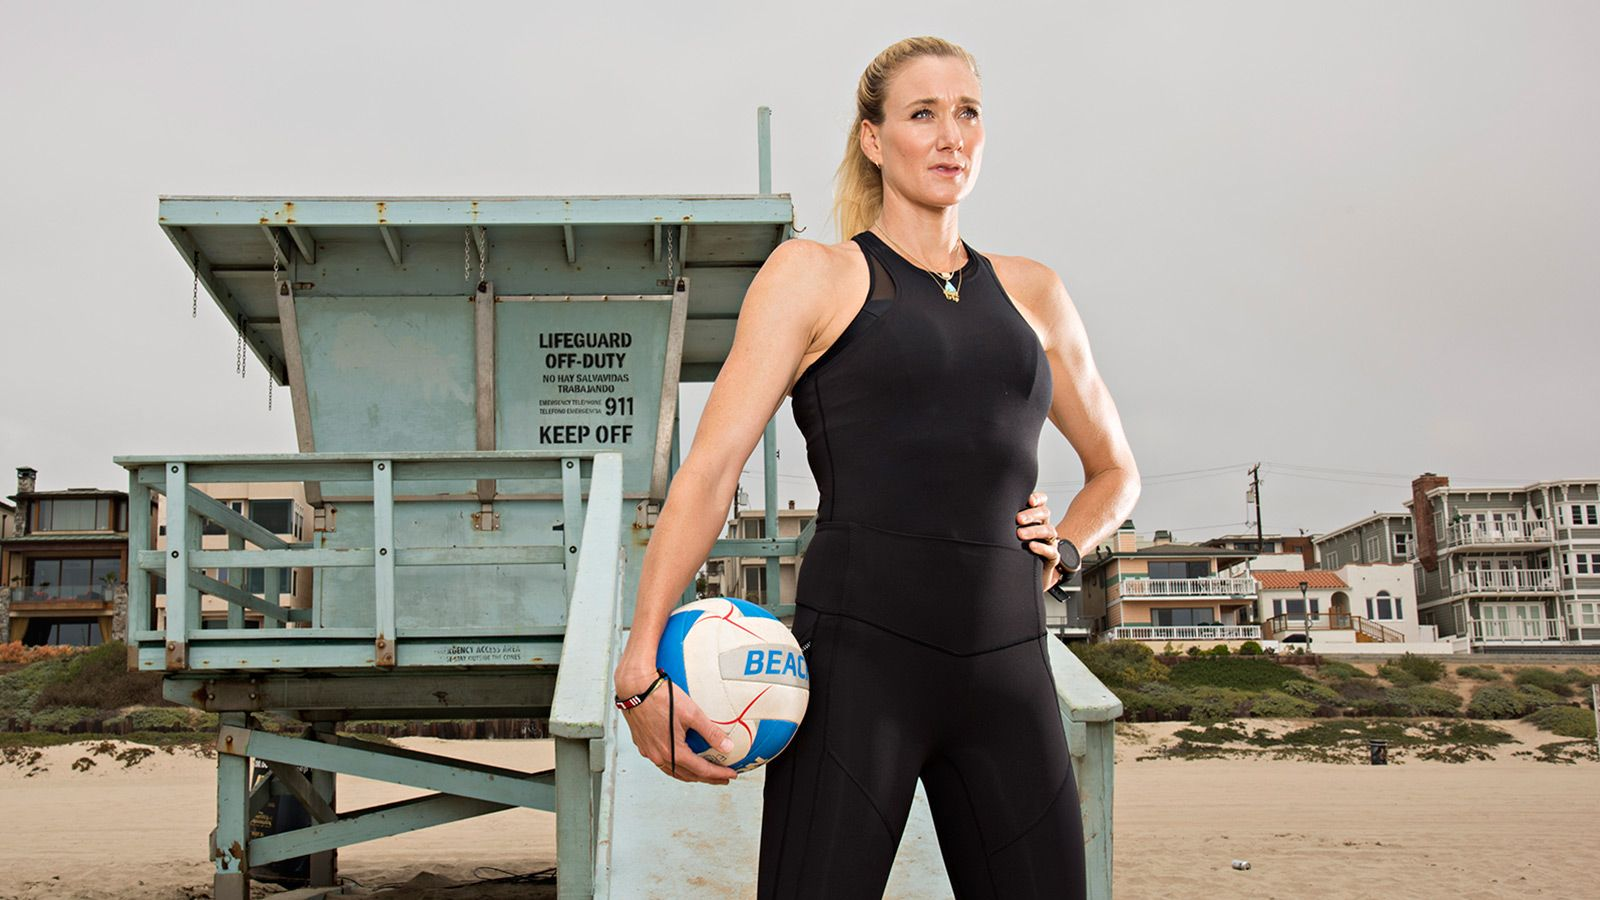 f1acb9bb47d Kerri Walsh Jennings draws a line in the sand